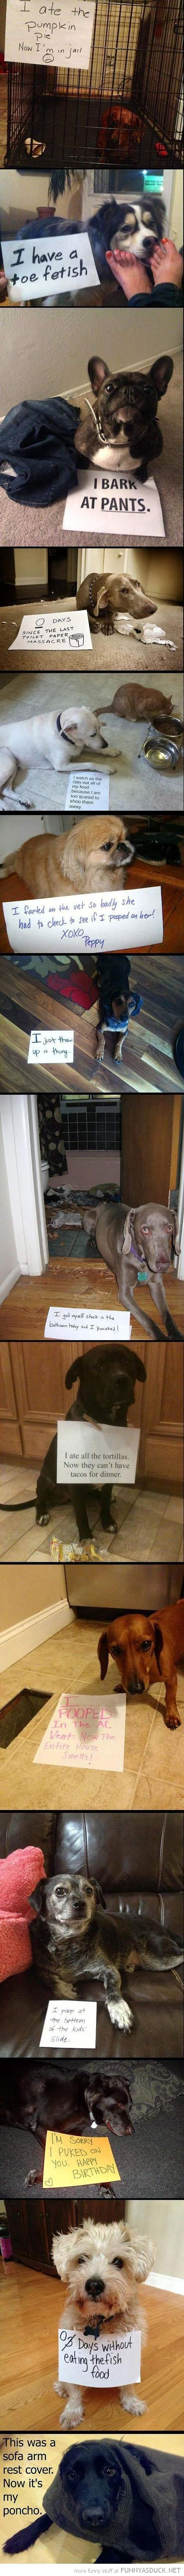 dog animal shaming confession signs compilation funny pics pictures pic picture image photo images photos lol